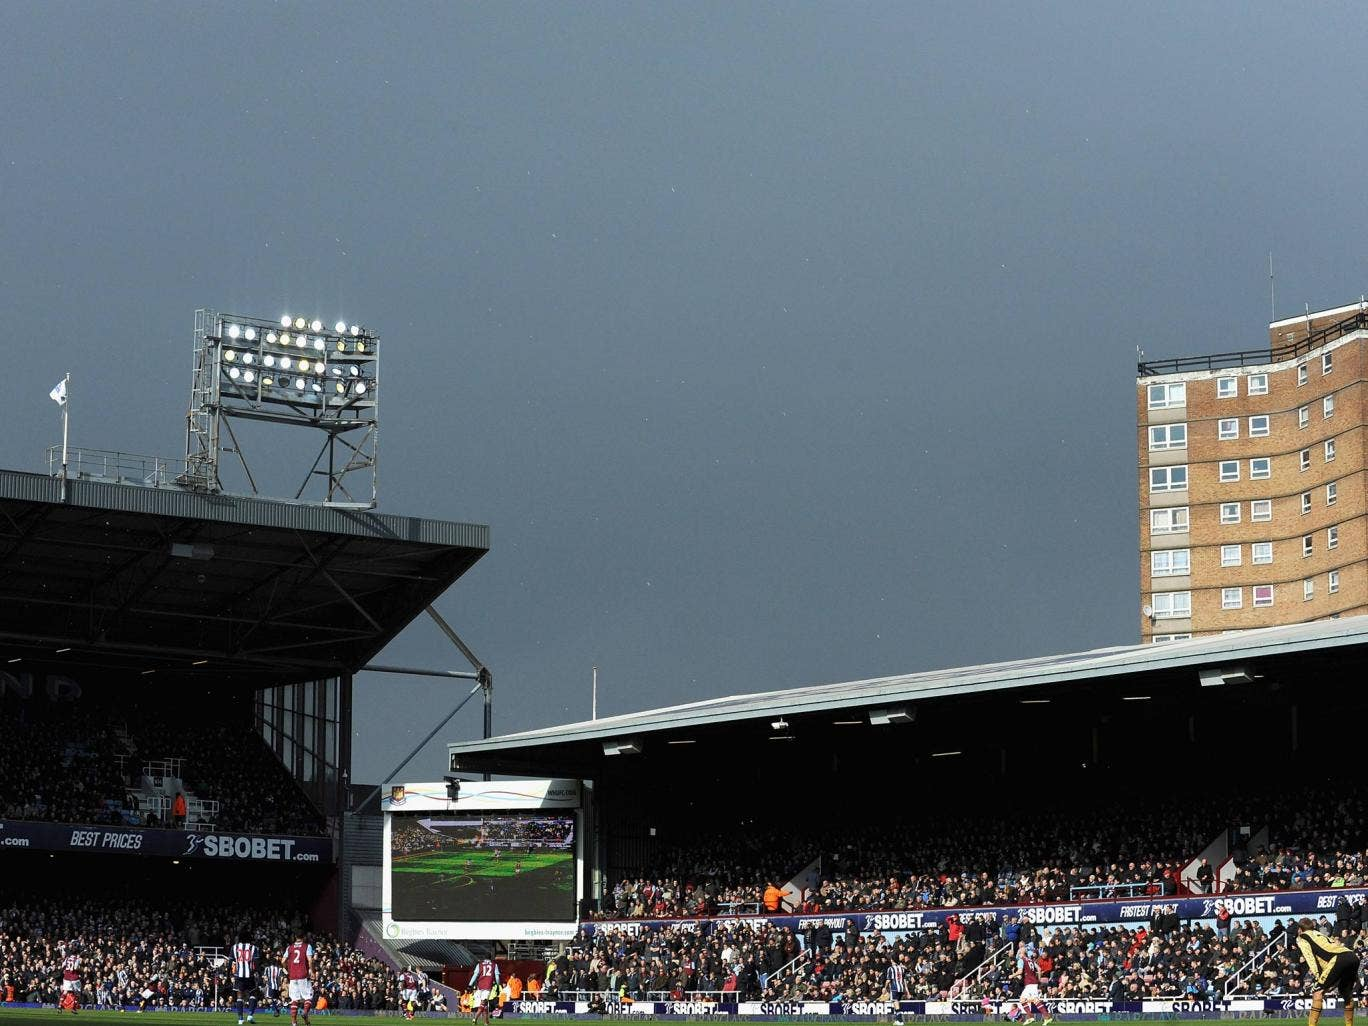 A view of West Ham's Upton Park